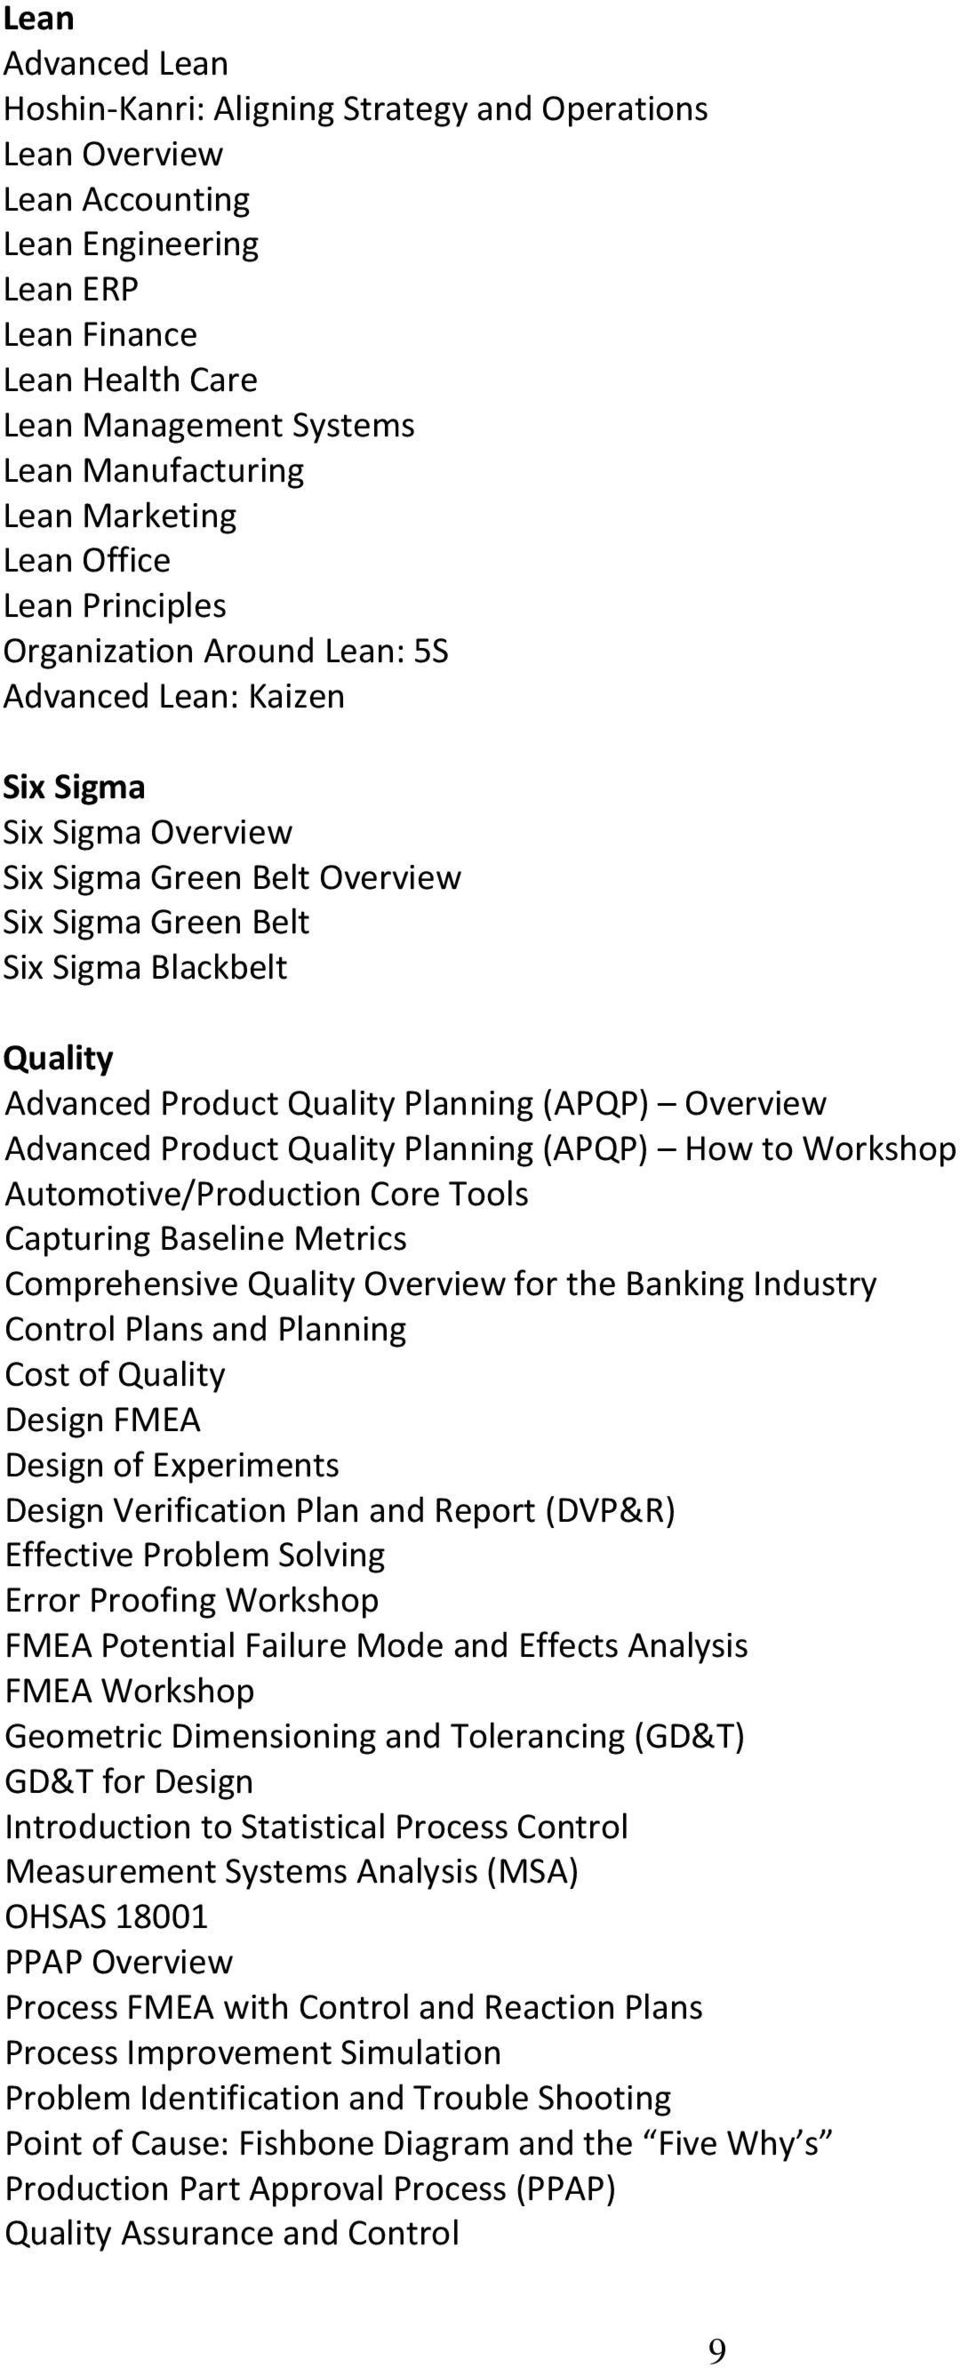 Advanced Product Quality Planning (APQP) Overview Advanced Product Quality Planning (APQP) How to Workshop Automotive/Production Core Tools Capturing Baseline Metrics Comprehensive Quality Overview